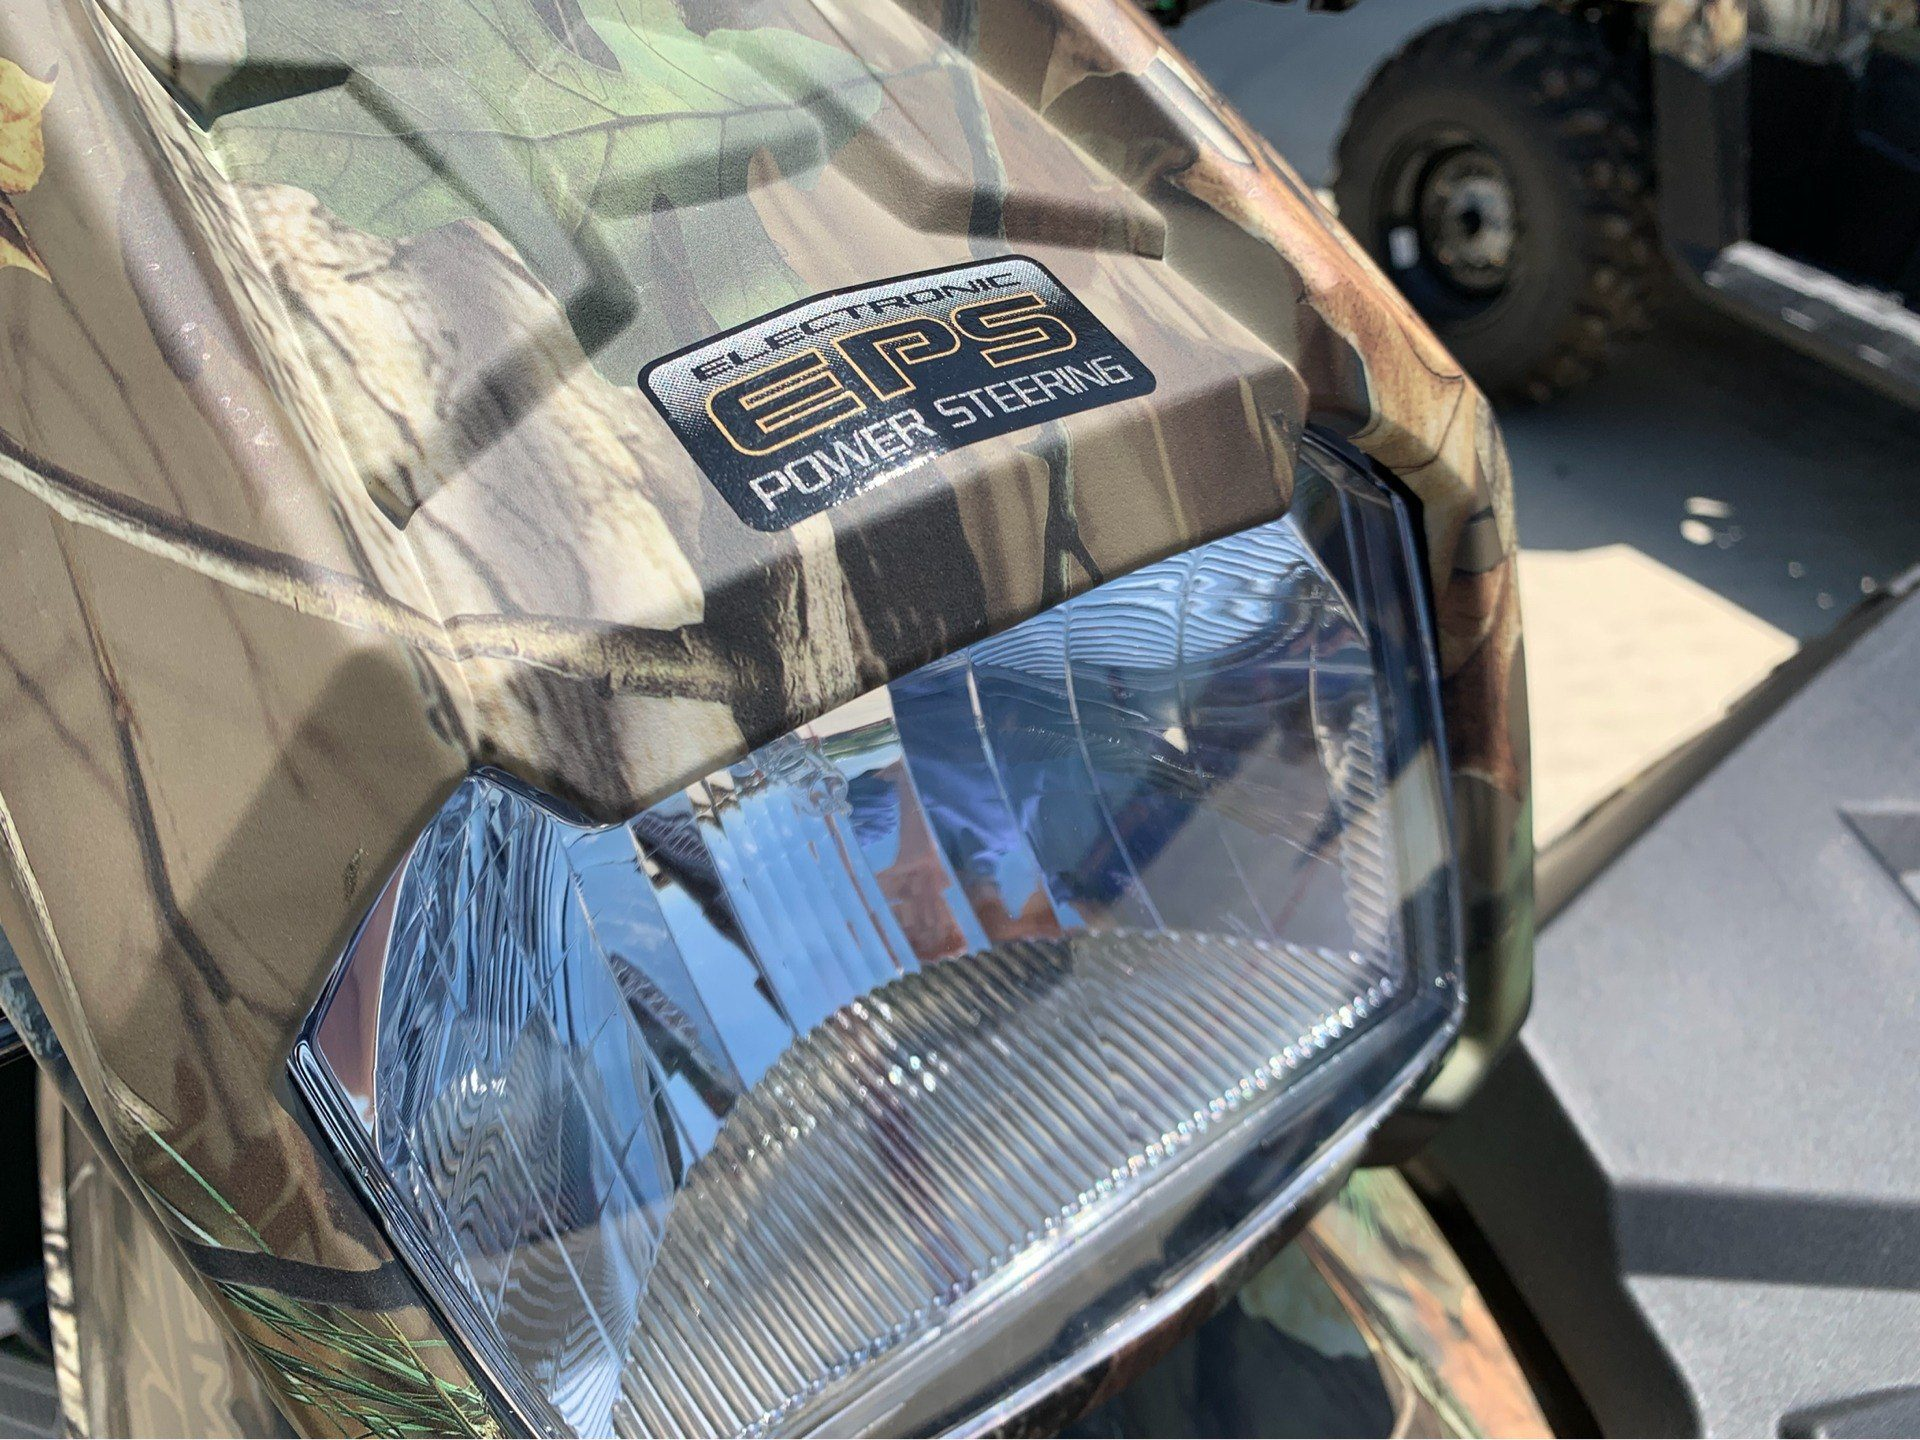 2018 Polaris Sportsman 570 EPS Camo in Marshall, Texas - Photo 6